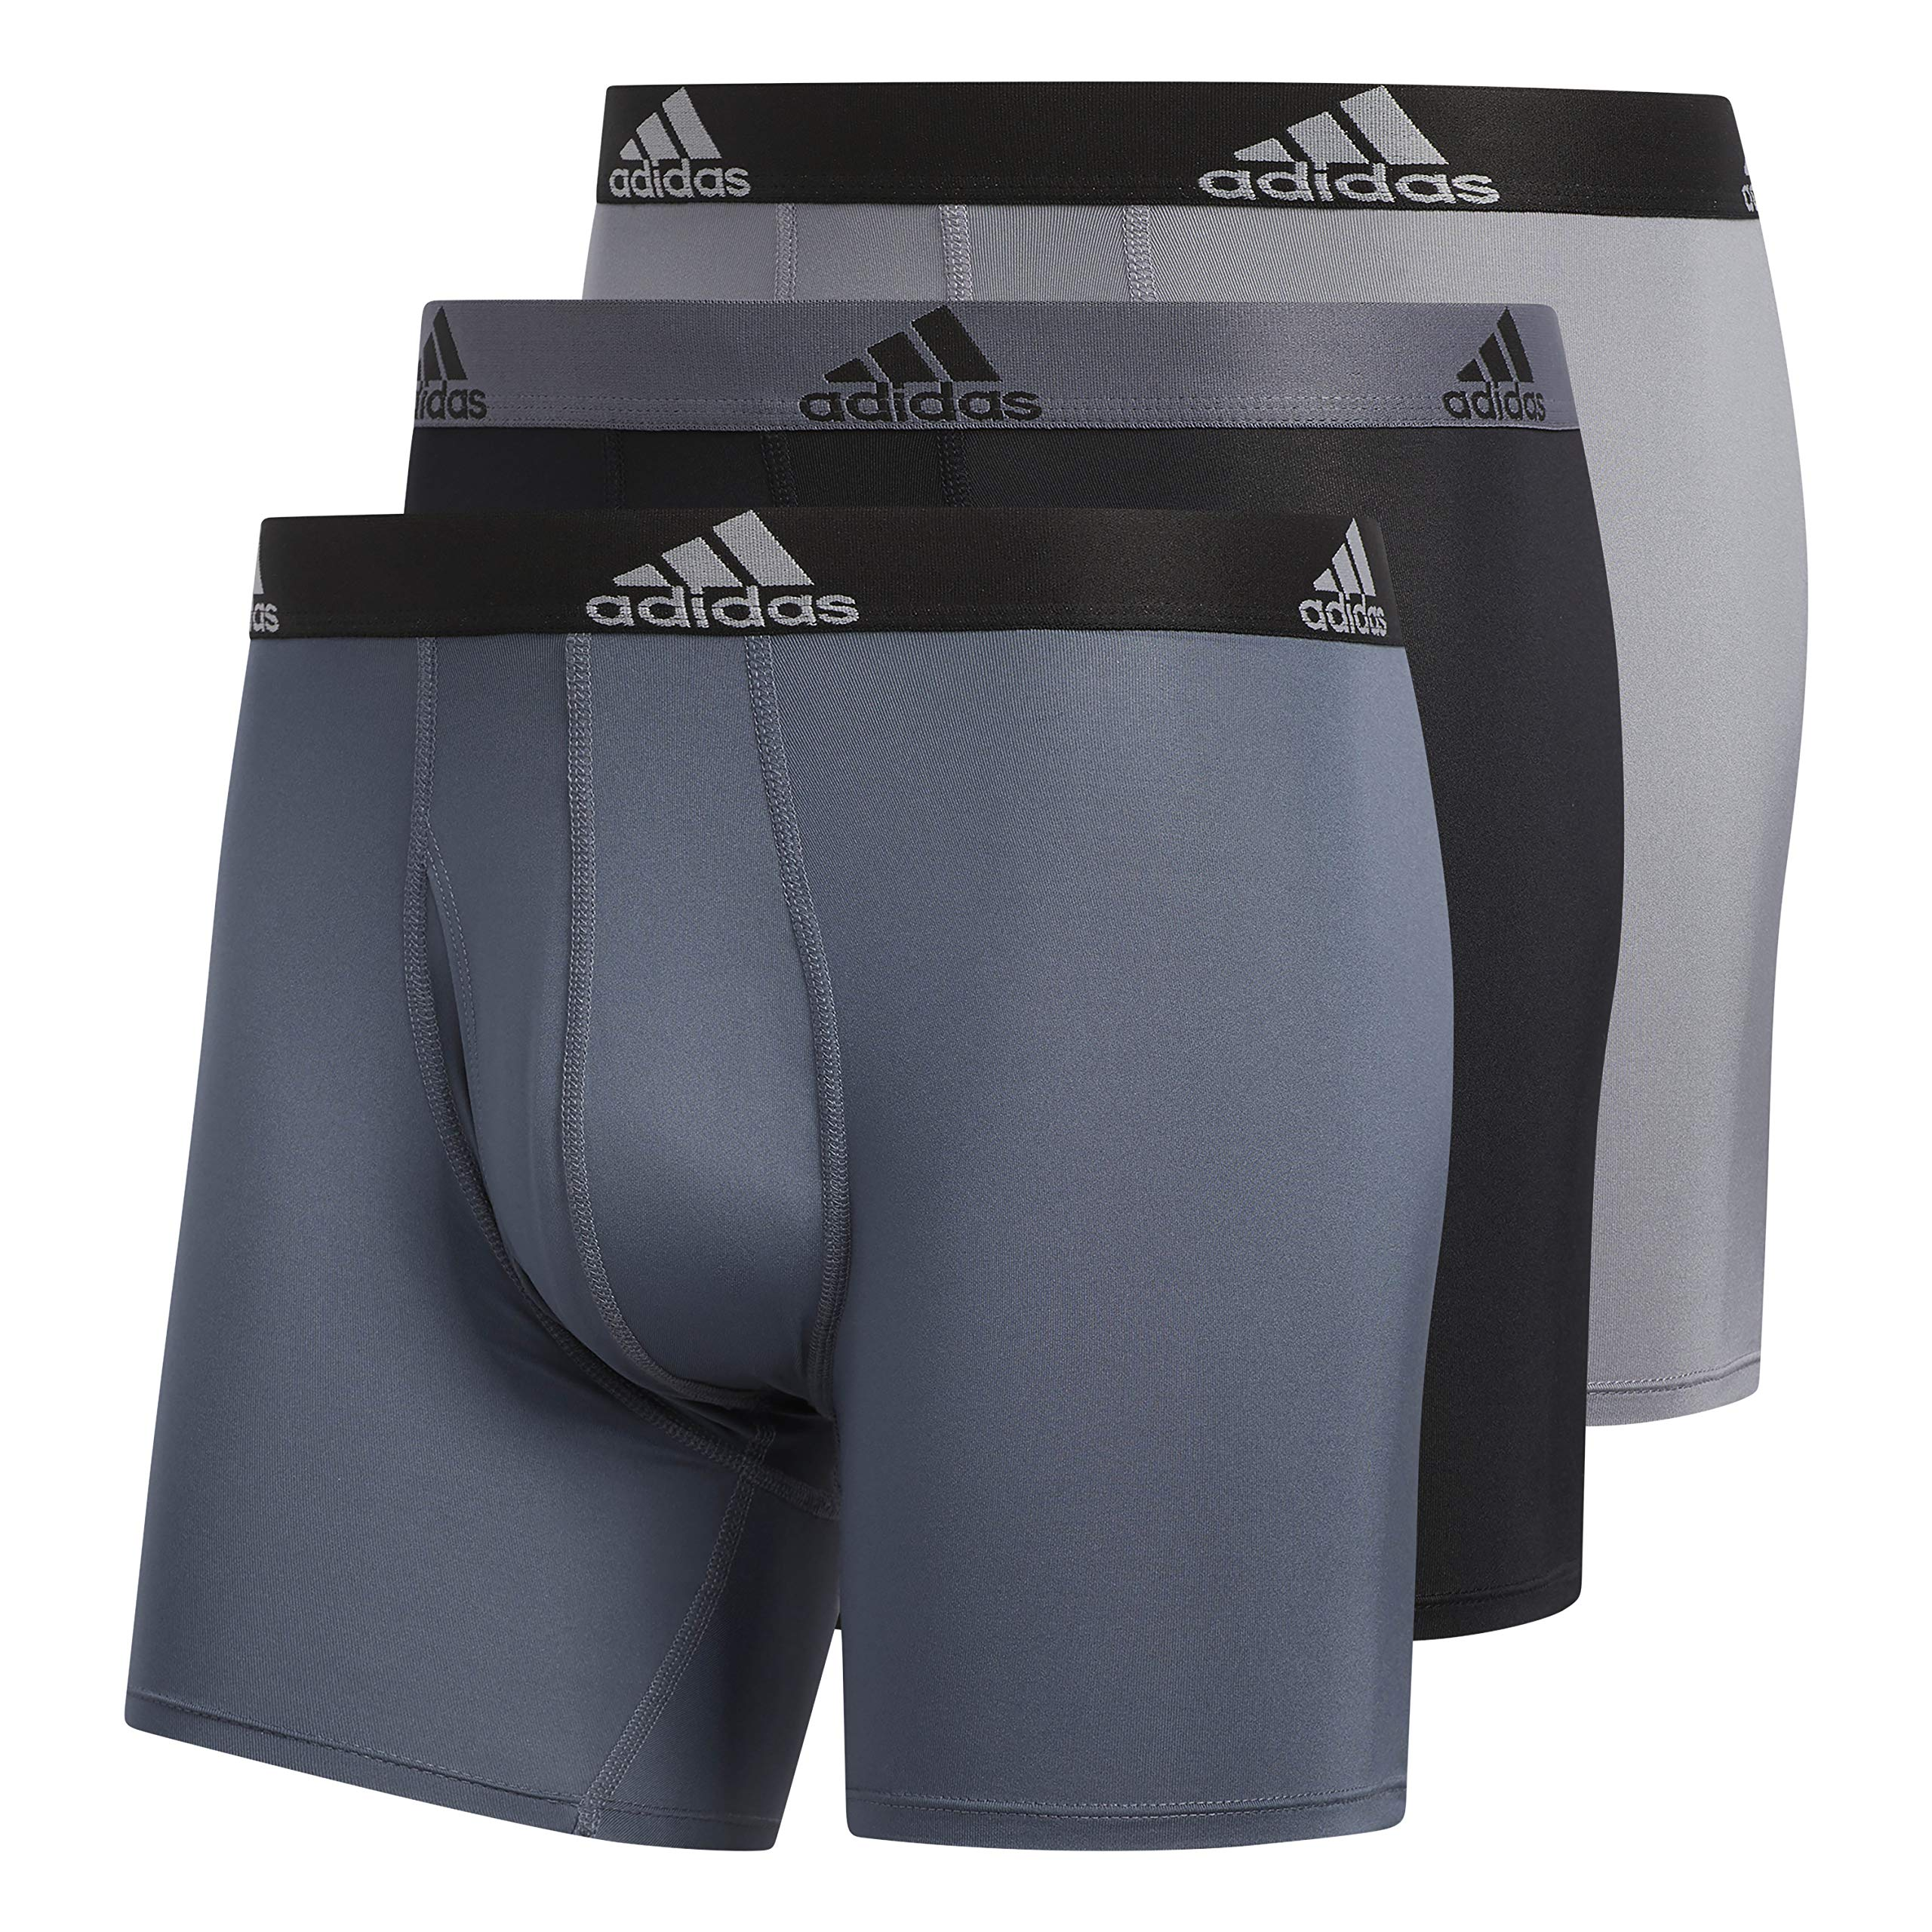 adidas Men's Sport Performance Climalite Boxer Briefs (3 Pack), Onix Grey/Black, Large by adidas